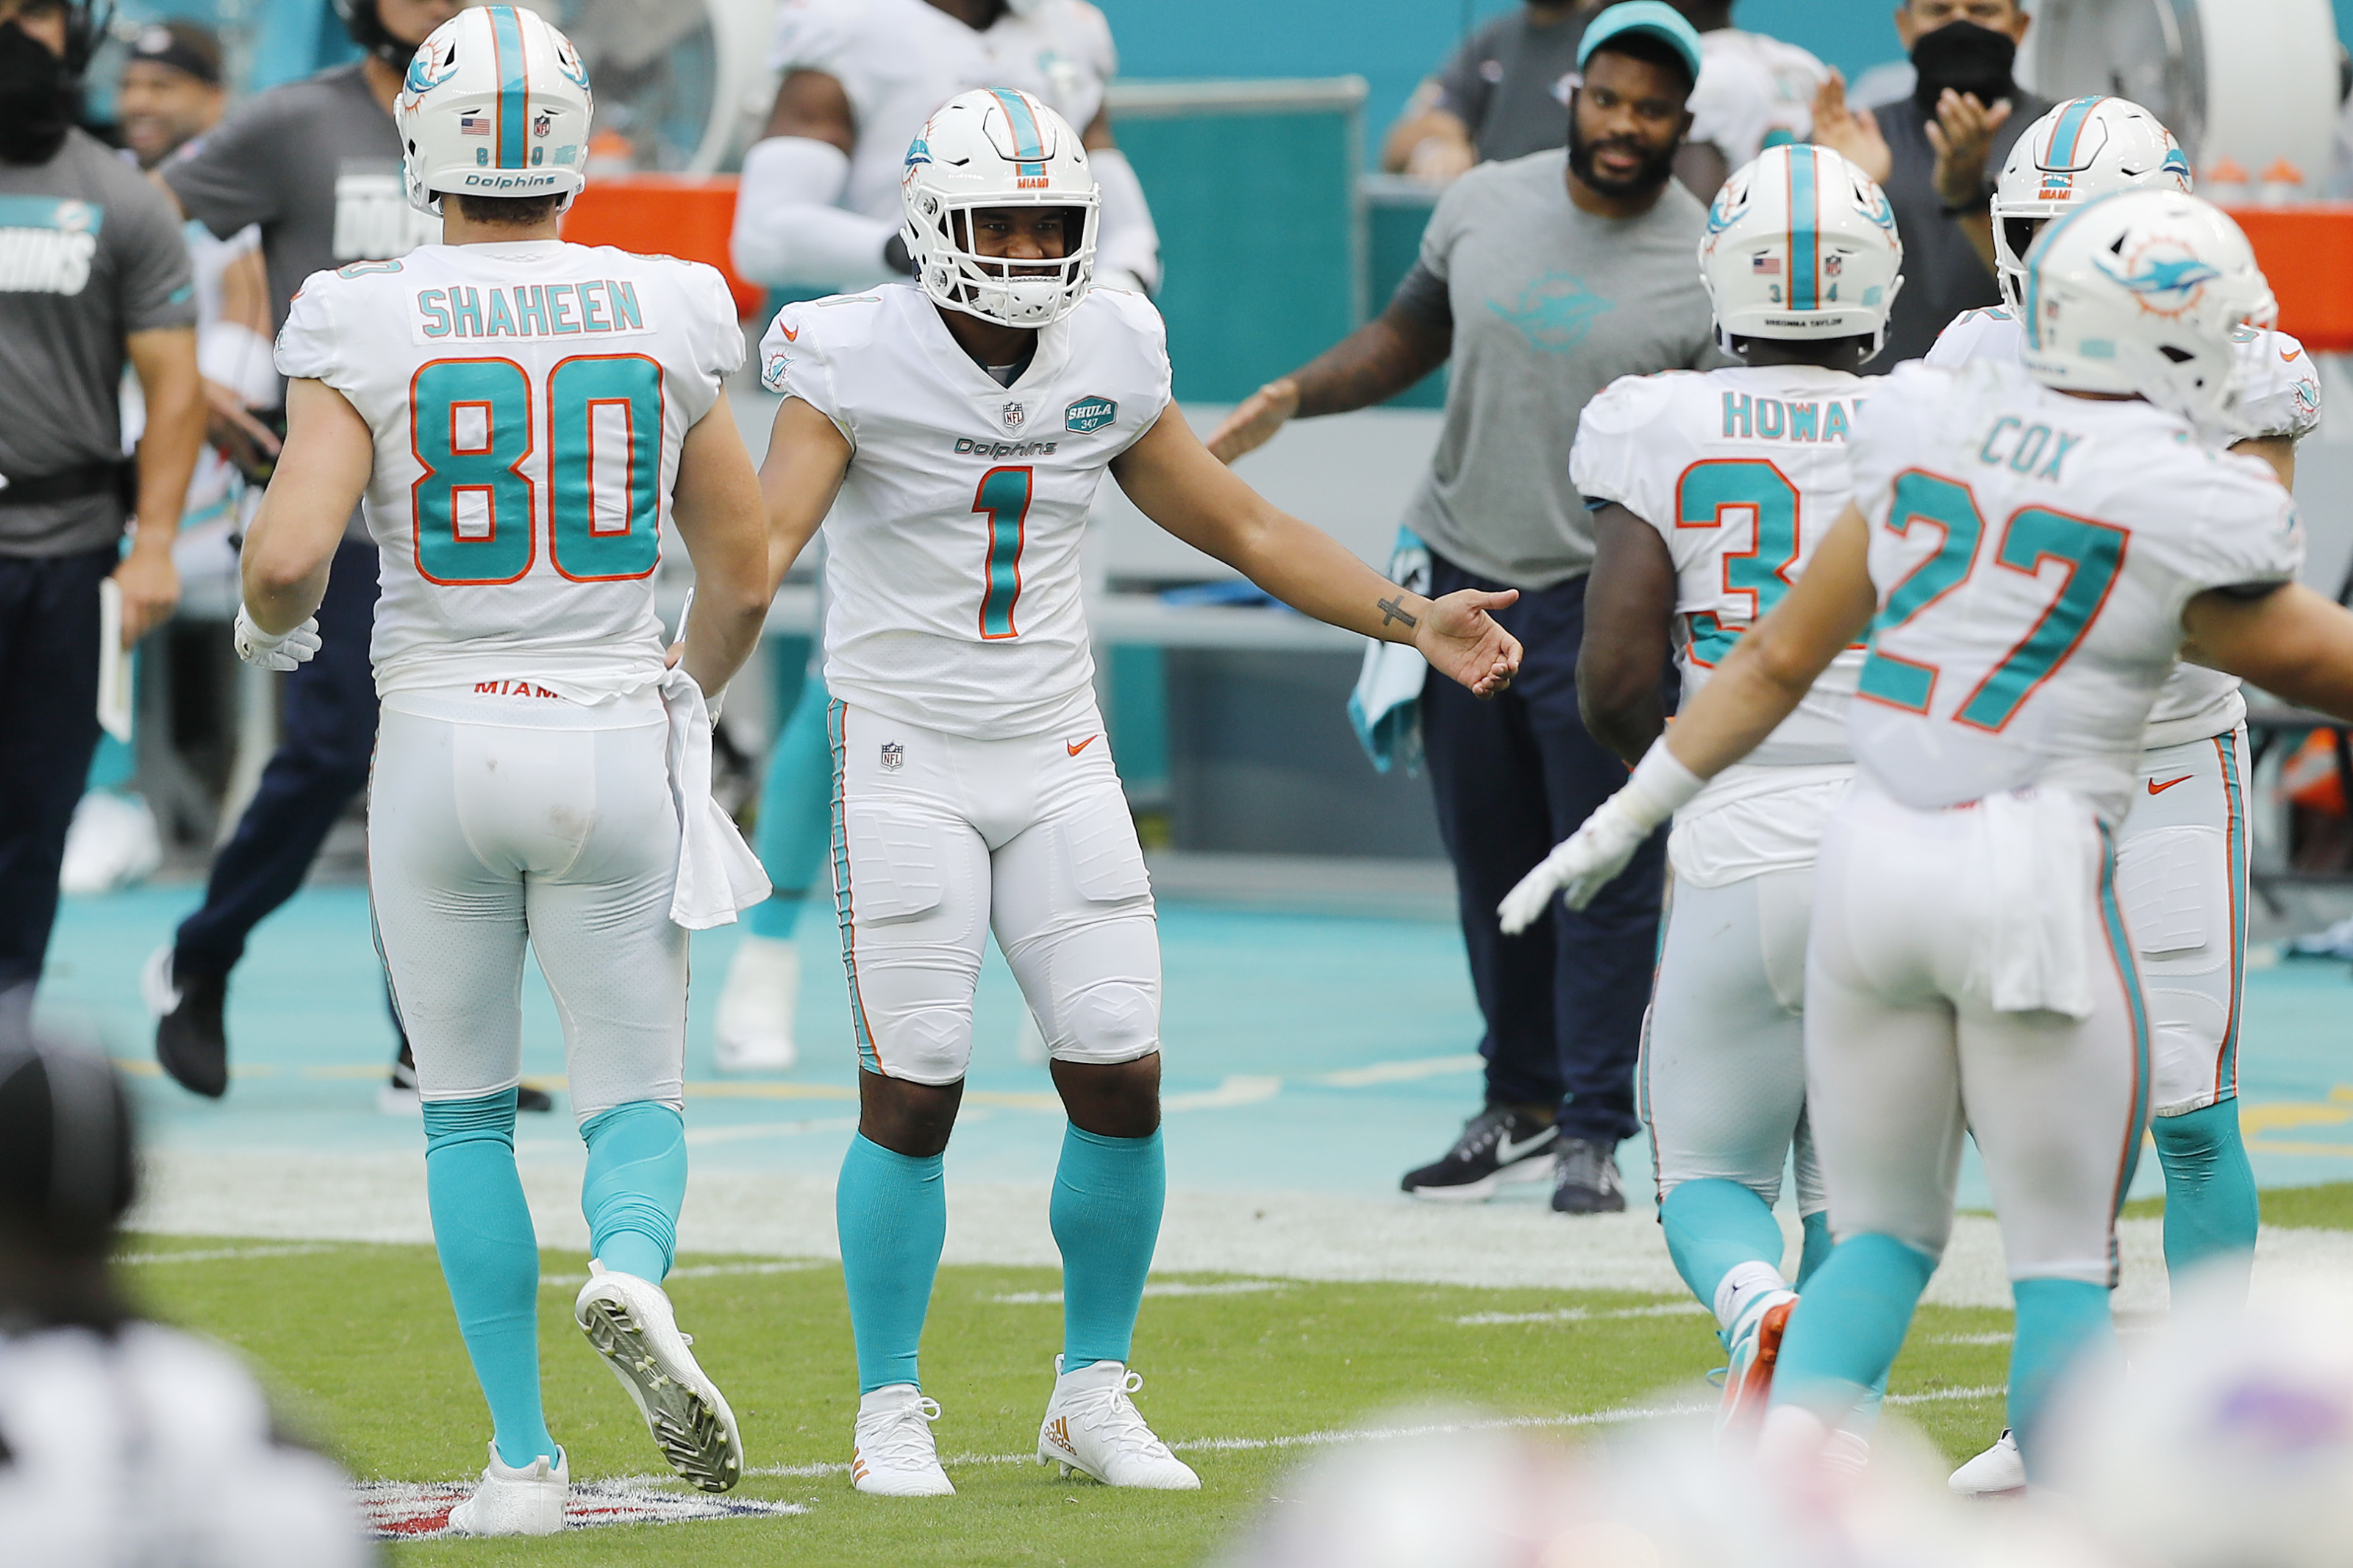 Should Tua Tagovailoa be promoted if the Dolphins fall to 0-3?